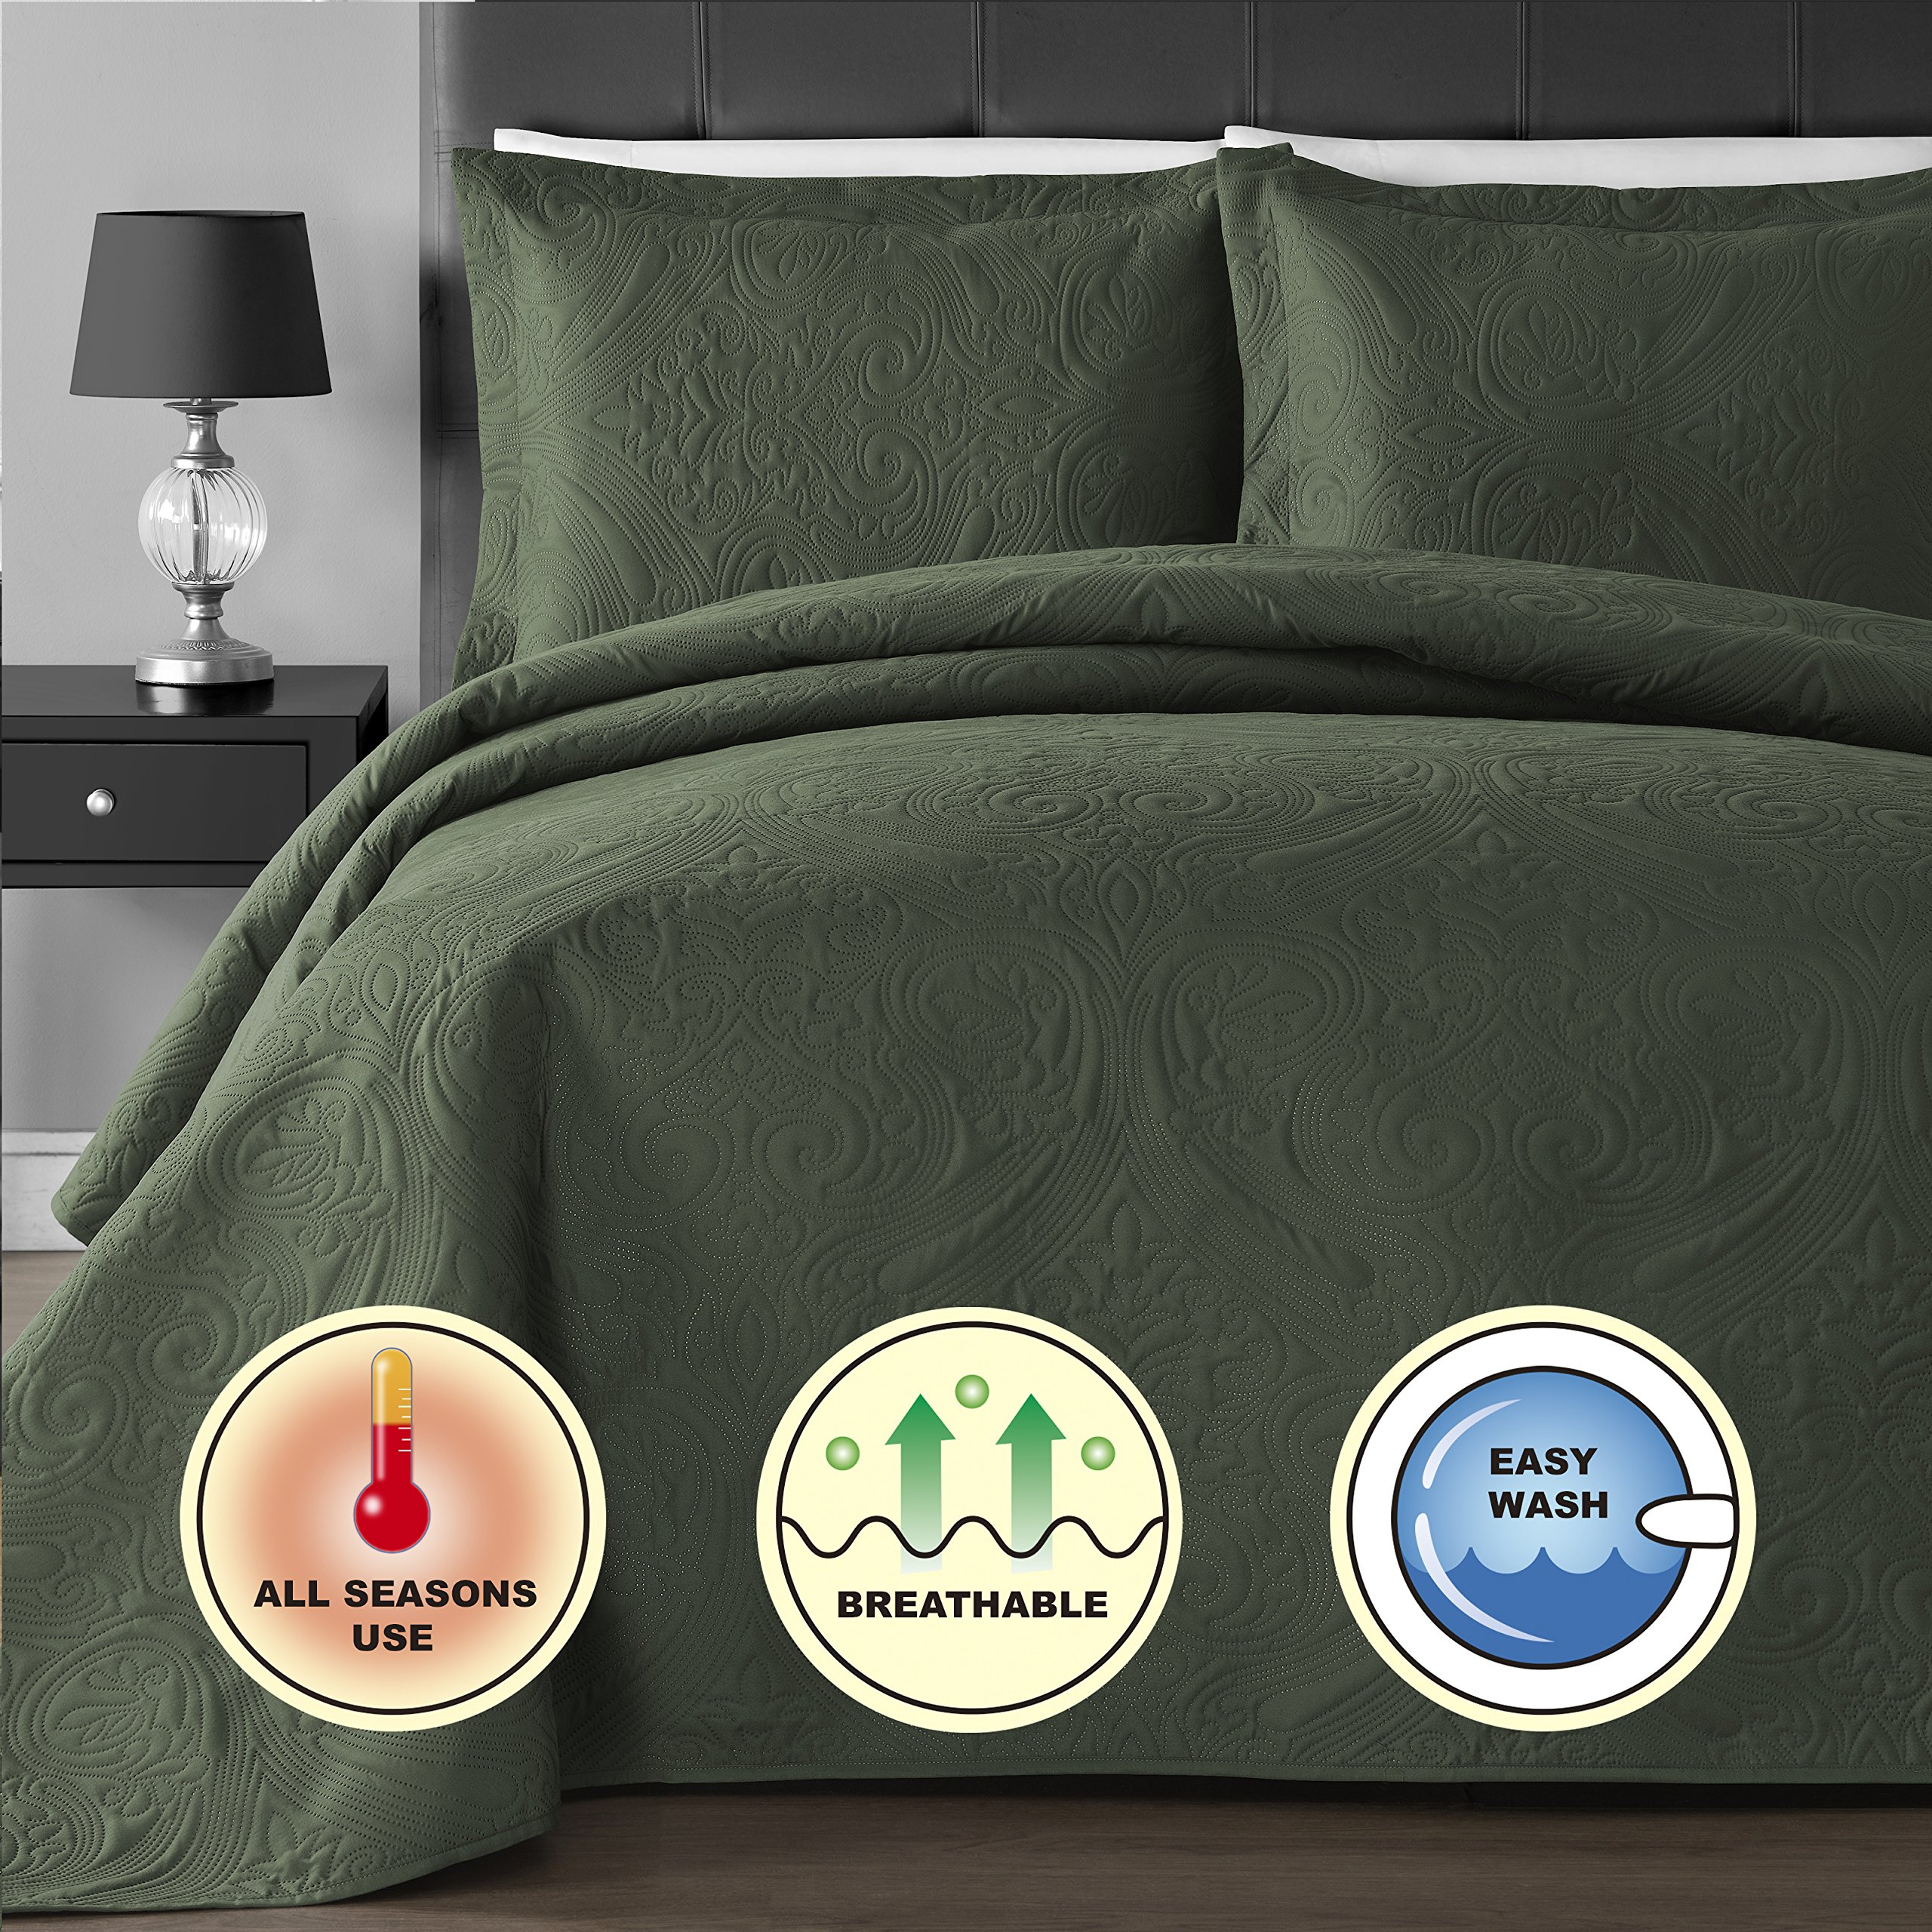 Comfy Bedding Extra Lightweight and Oversized Thermal Pressing Floral 3-Piece Coverlet Set (King/Cal King, Sage) by Comfy Bedding (Image #3)